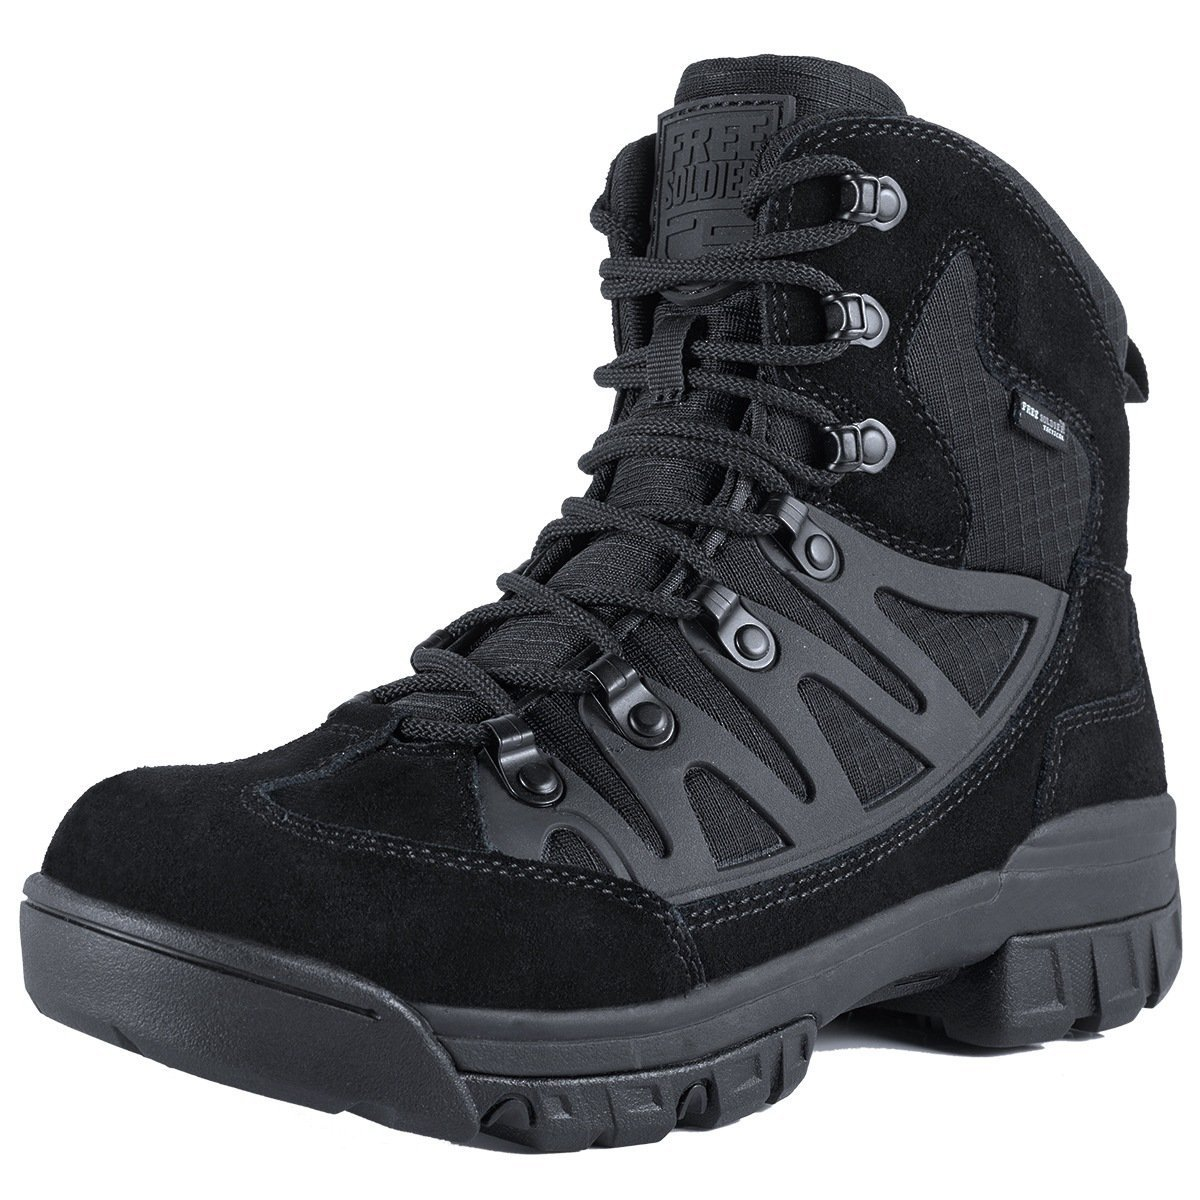 FREE SOLDIER Men's Outdoor Military Tactical Ankle Boots Ultra Combat Mid Hiking Boot (Black + Suede Leather, 11 US)